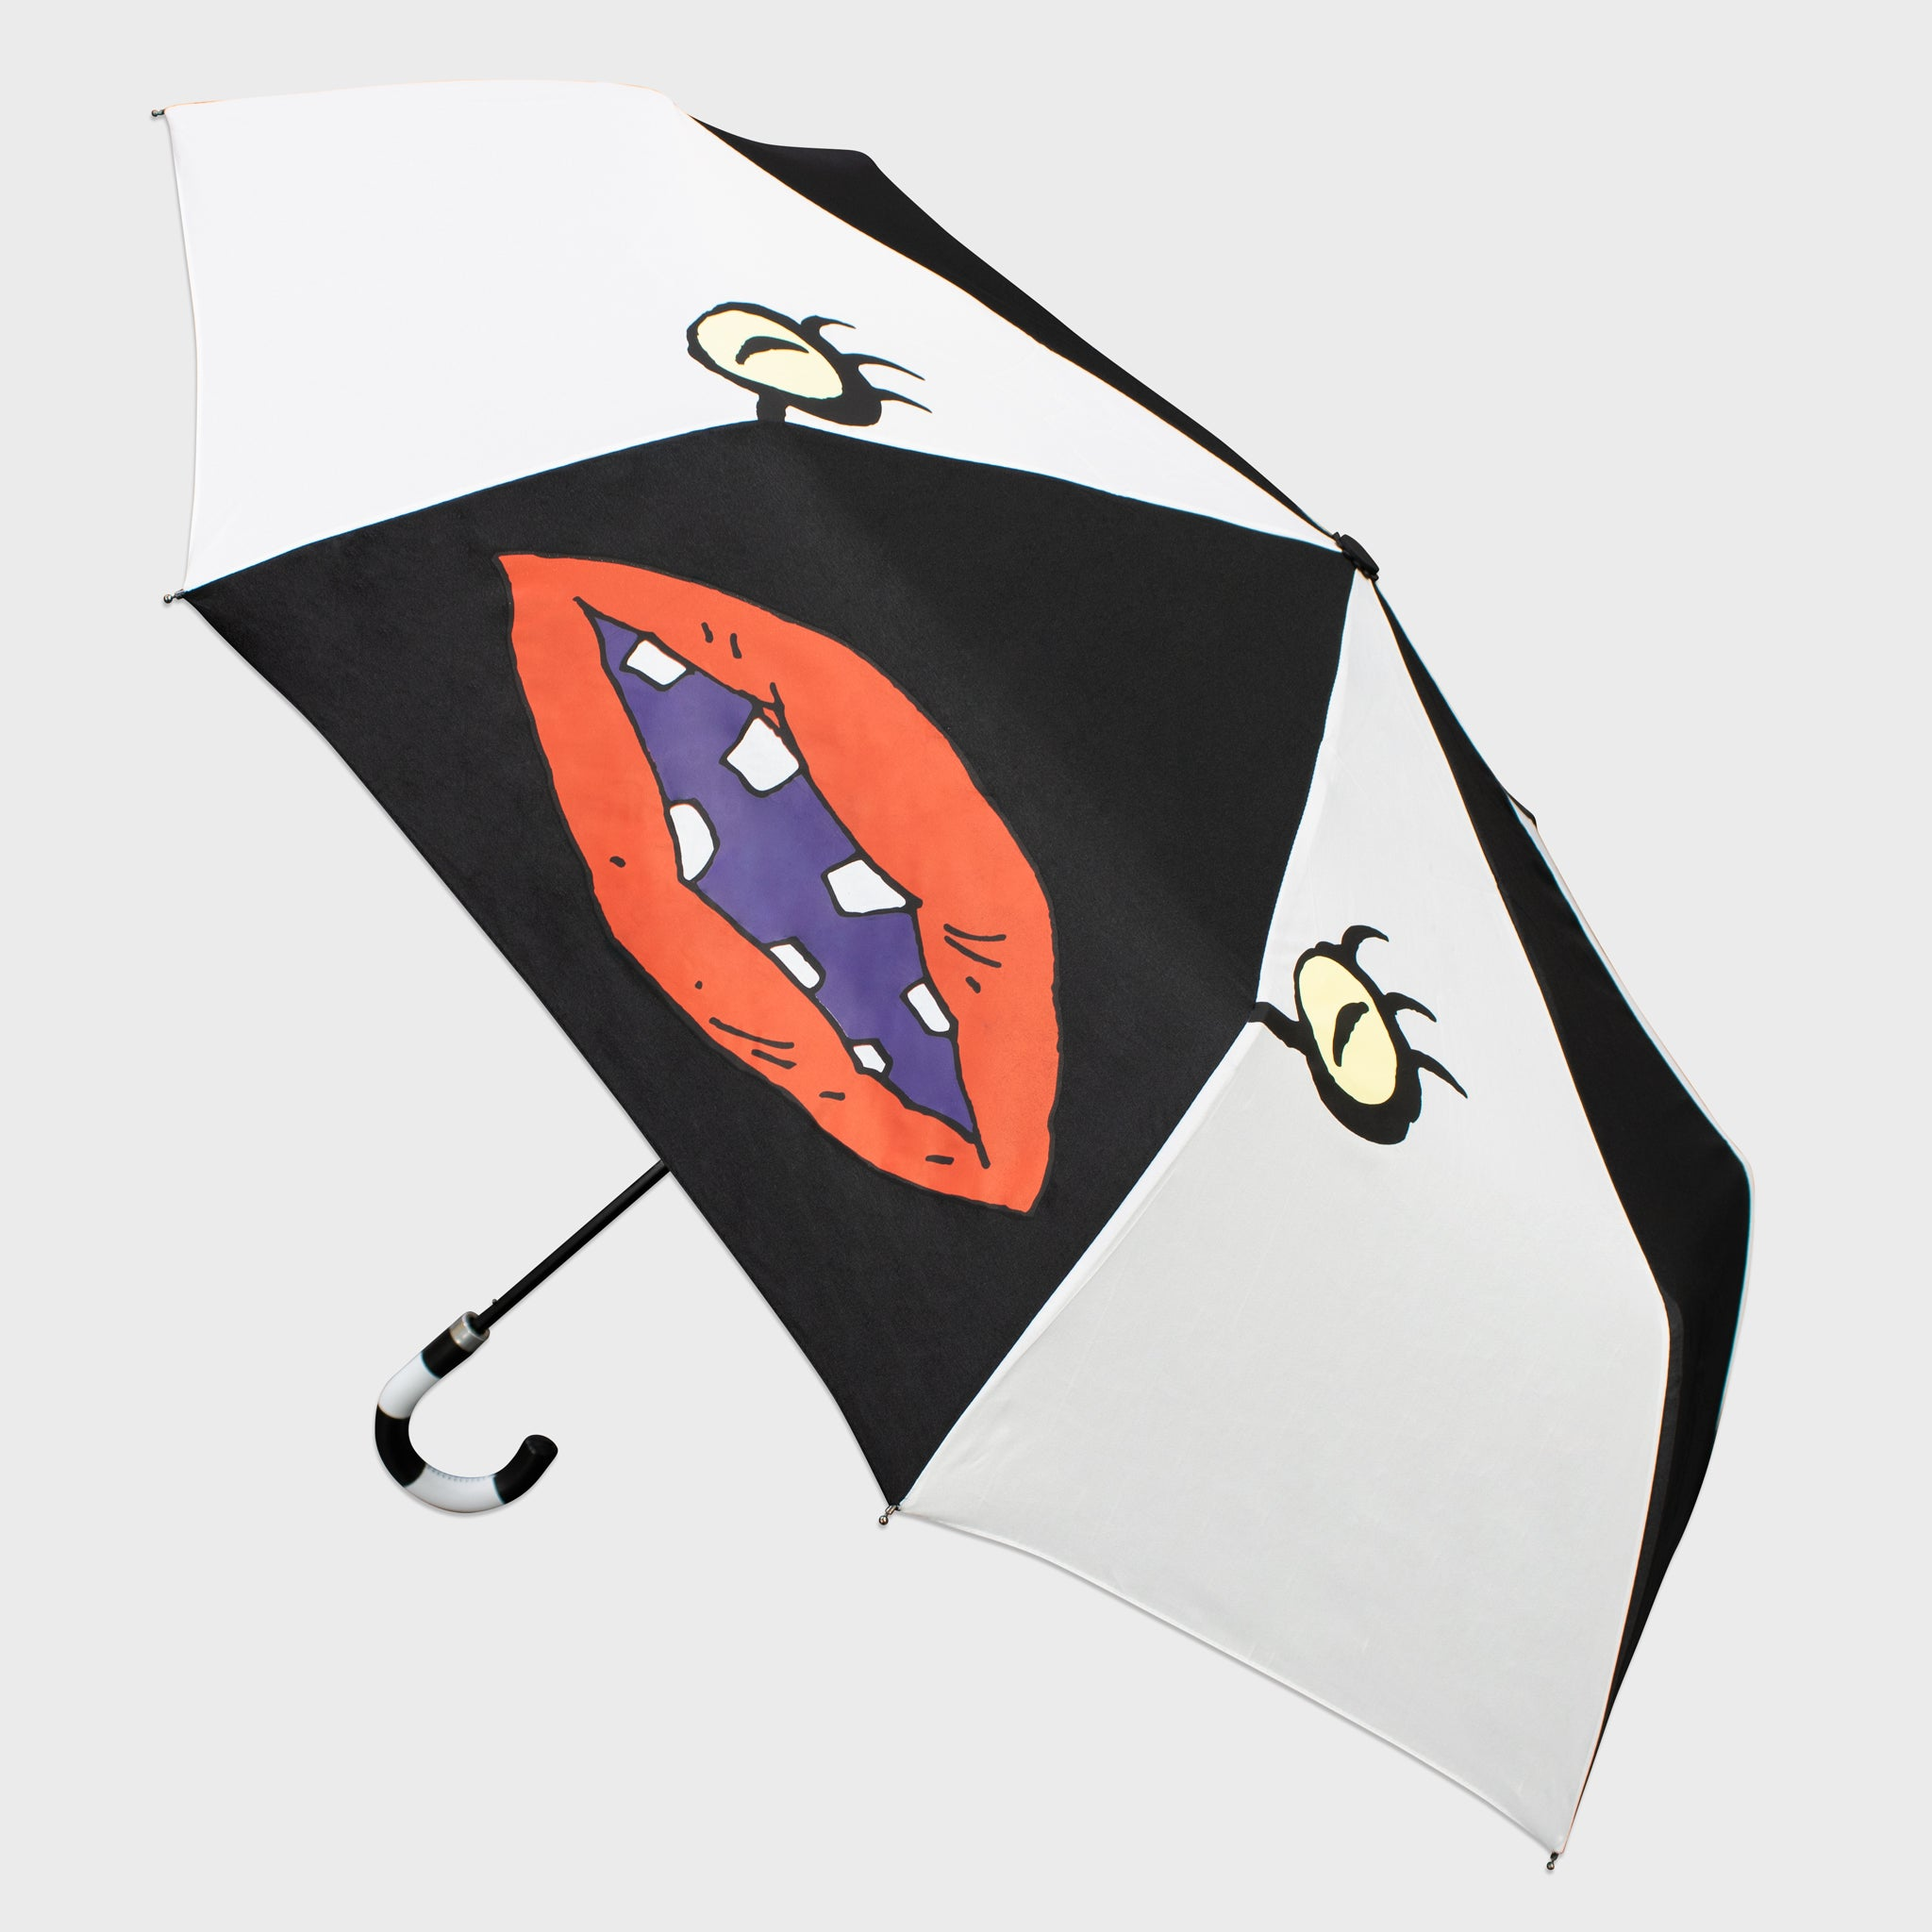 nick box nickelodeon collectible umbrella aaahh!!! real monsters 90s cartoons 90s kids culturefly